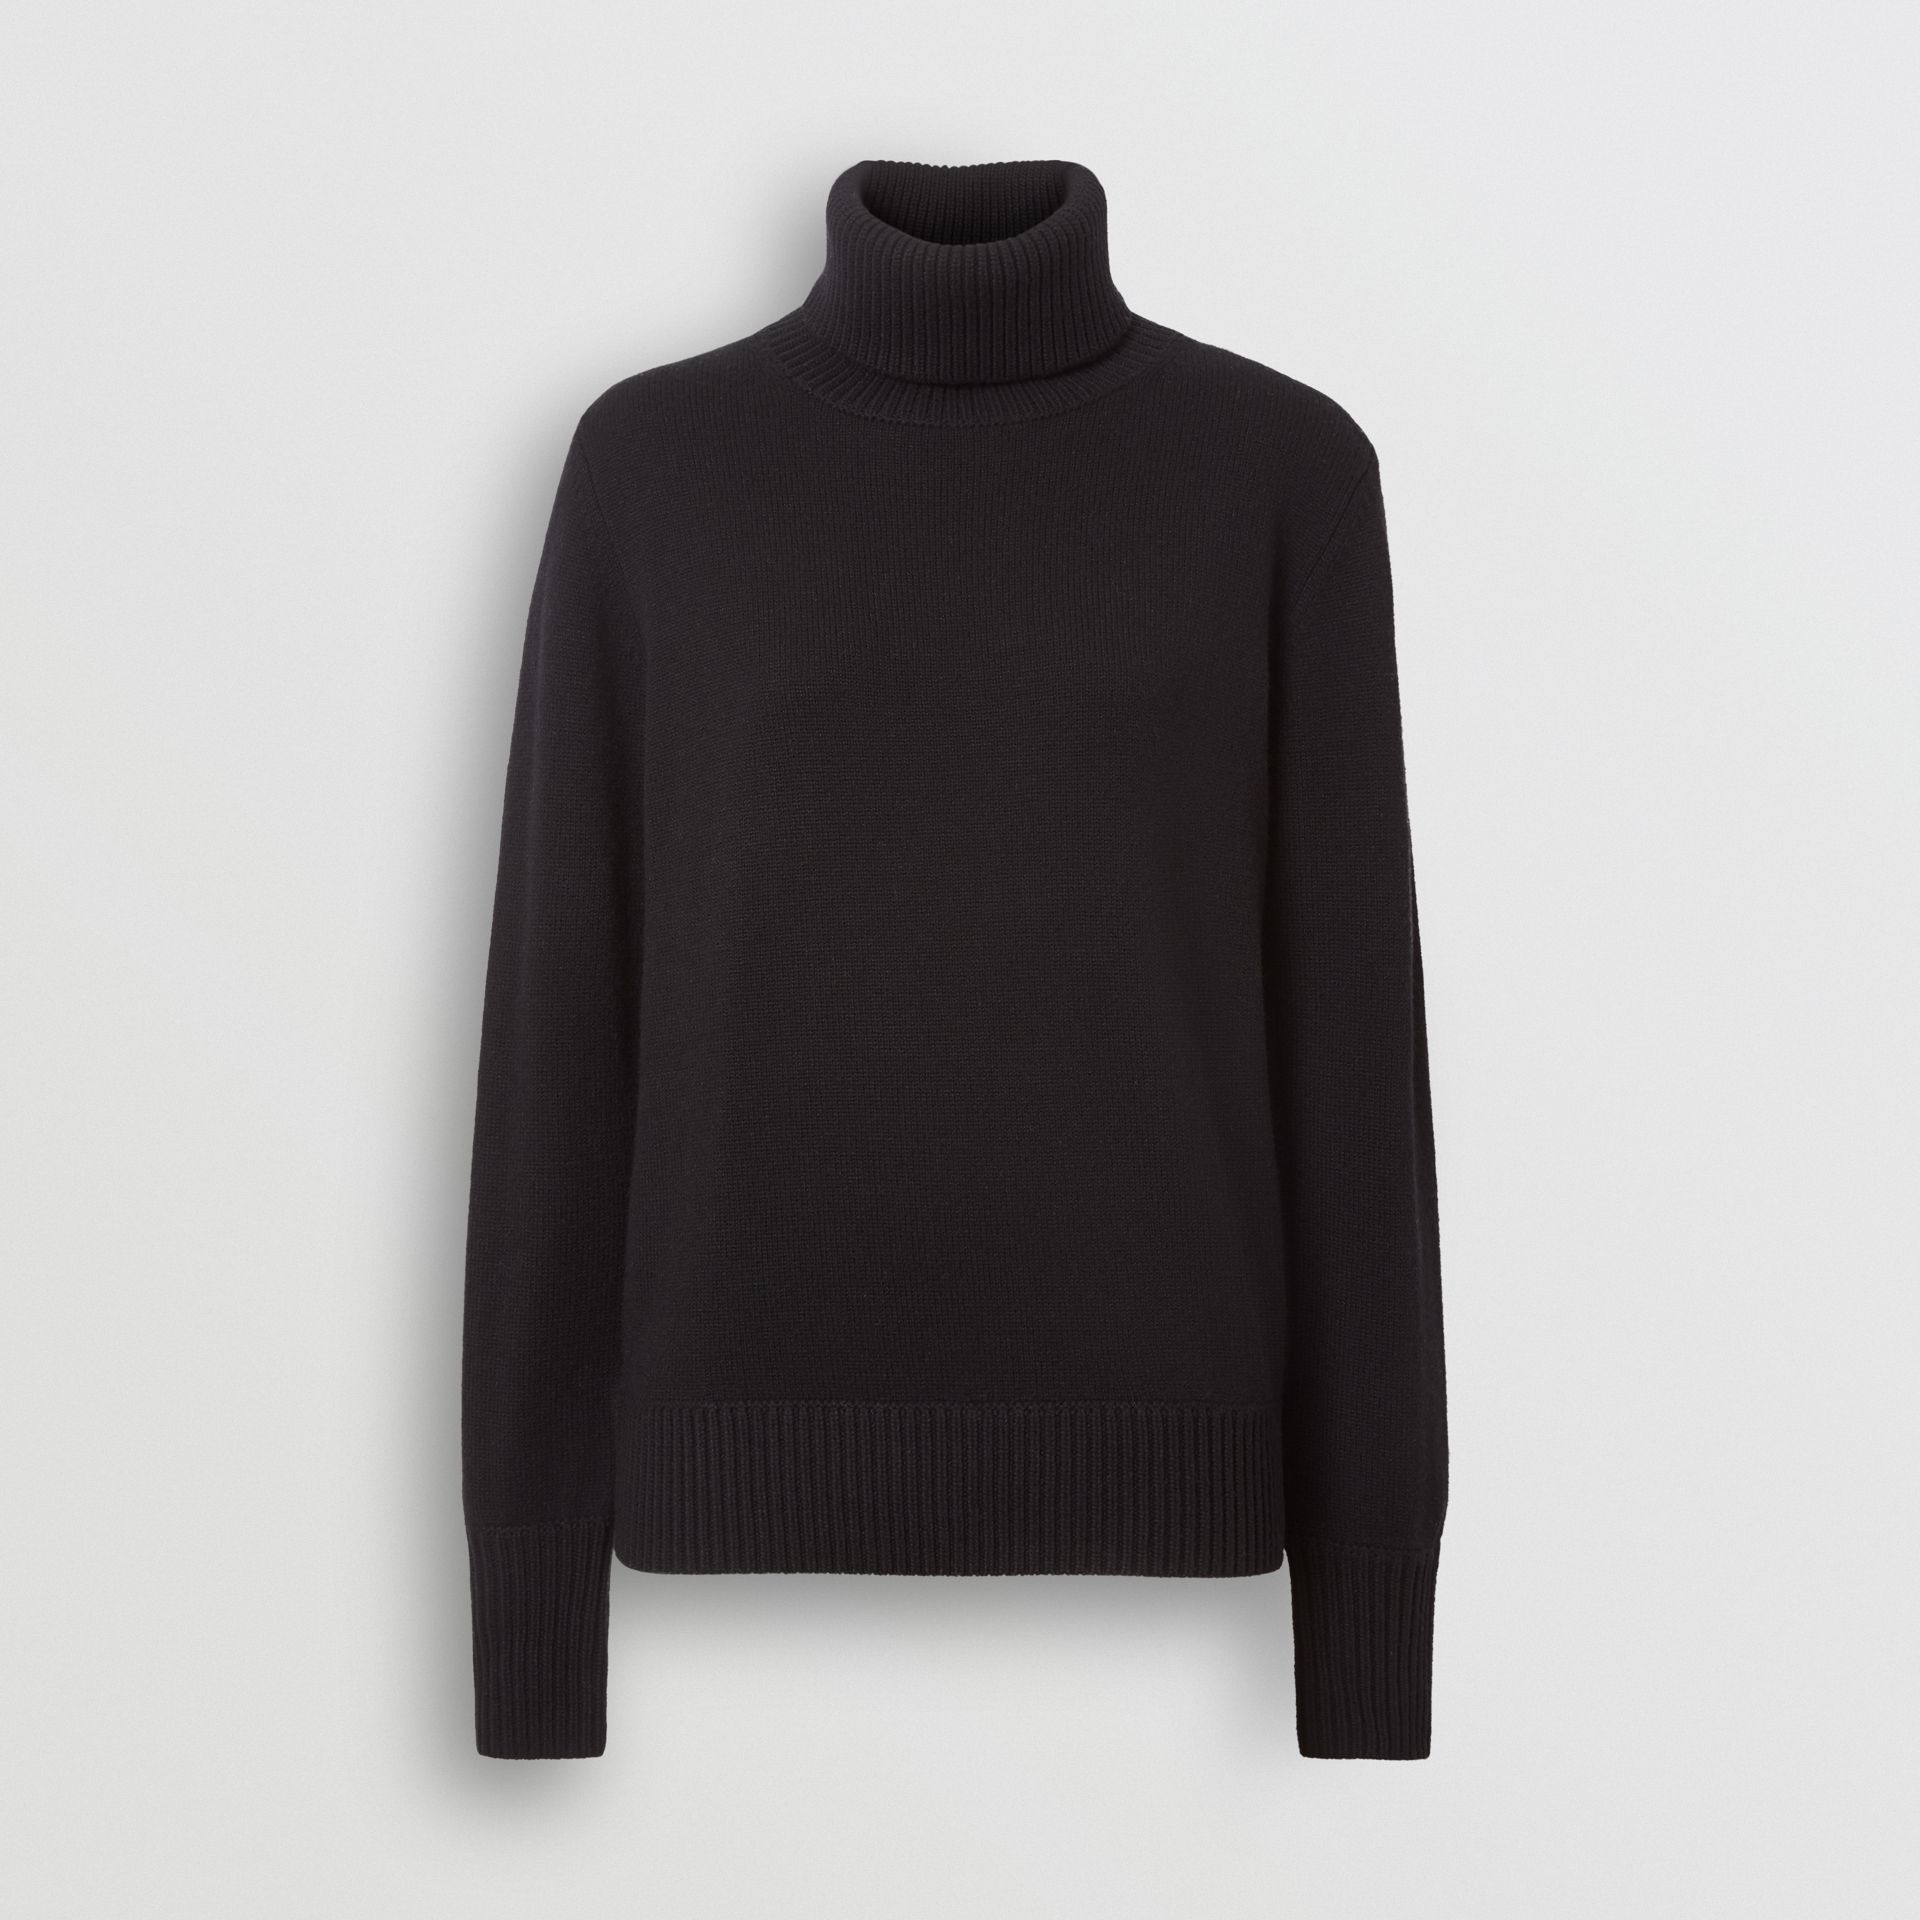 Embroidered Crest Cashmere Roll-neck Sweater in Black - Women | Burberry - gallery image 3